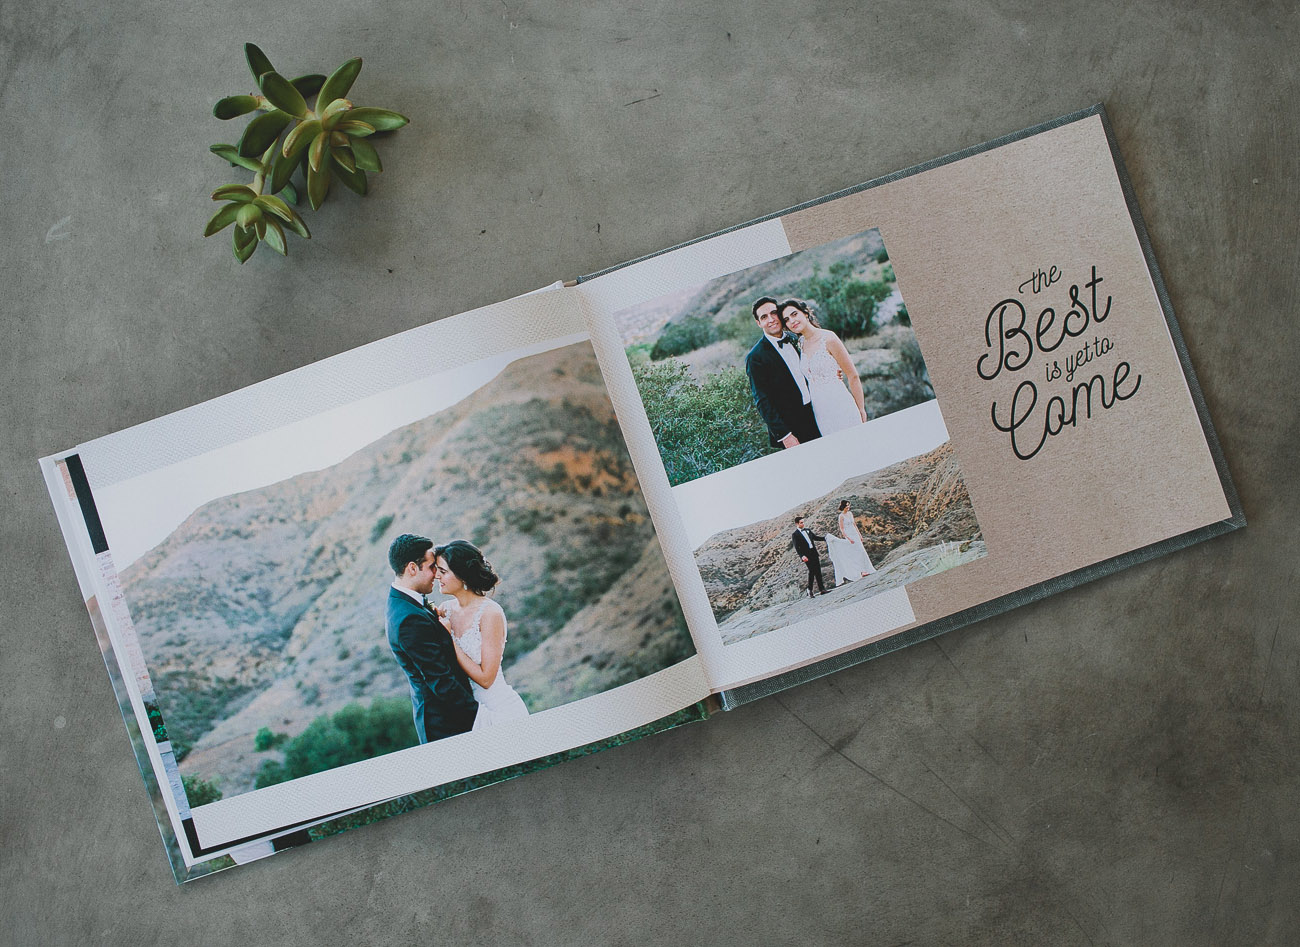 Blurb, Inc. - Official Site How to make a photobook in indesign